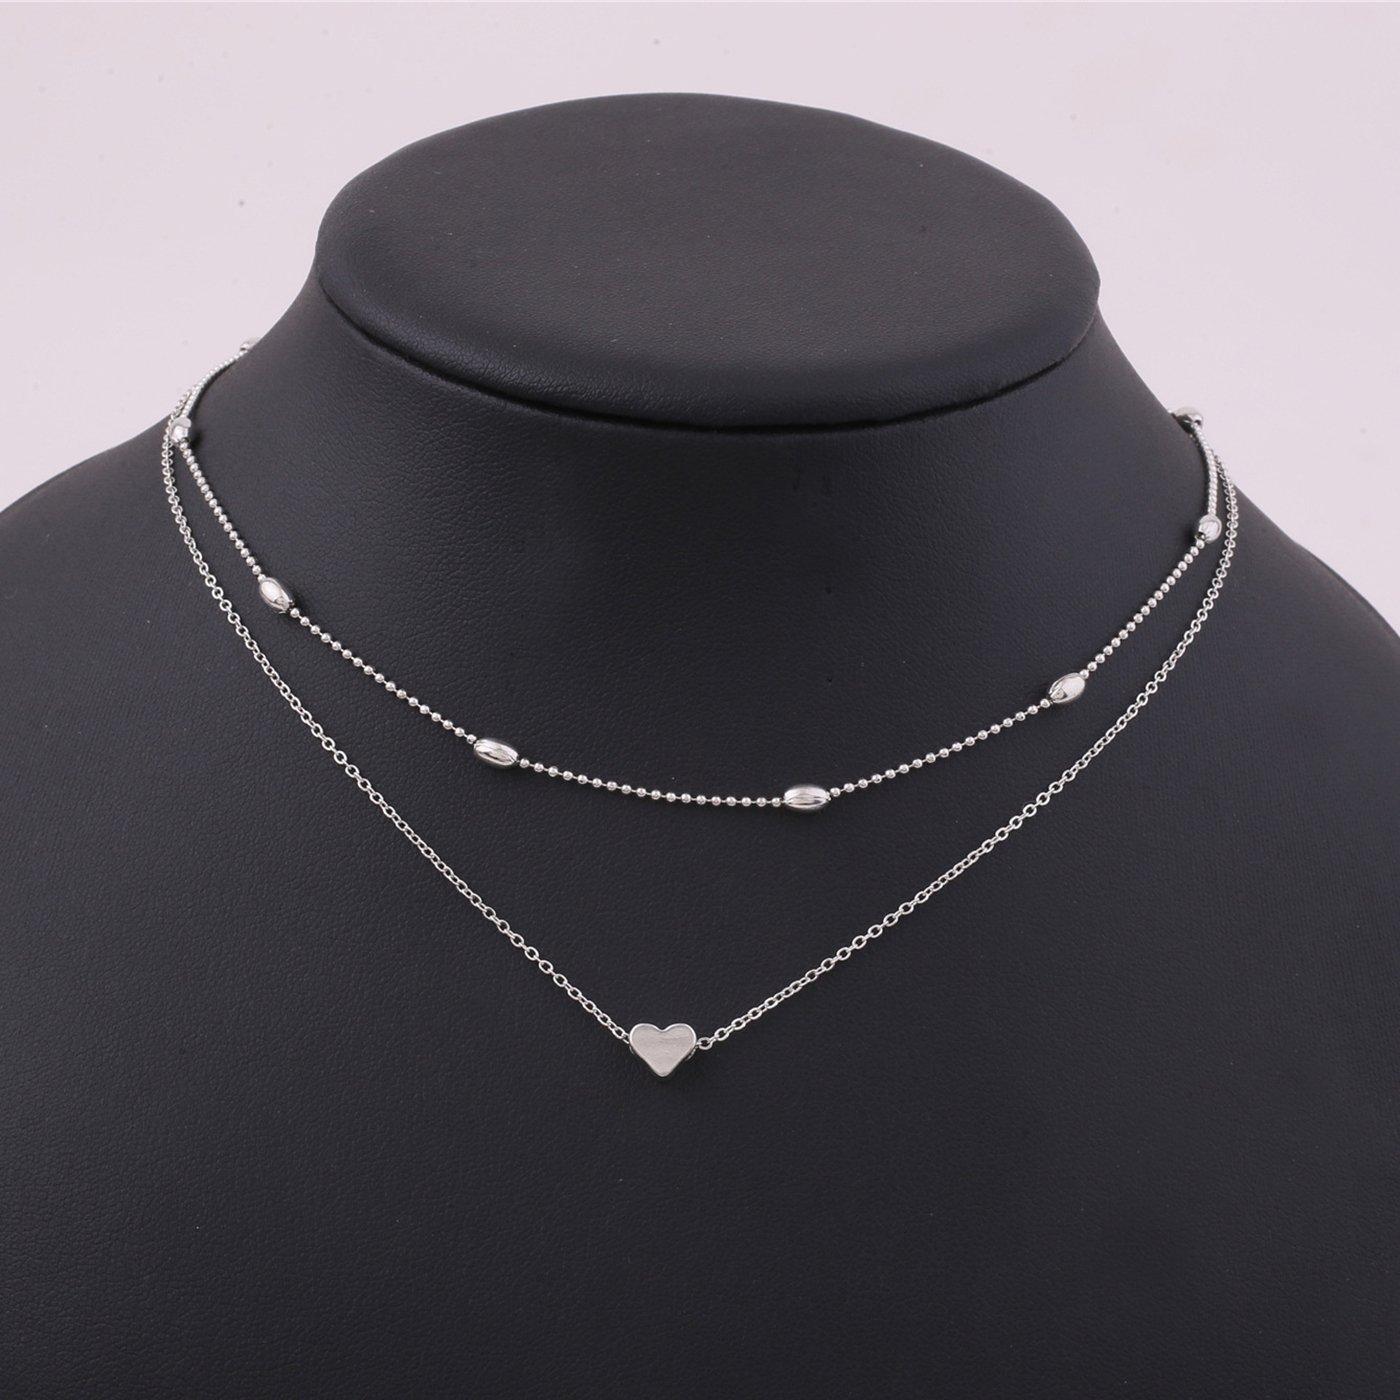 Anqifull Dainty Layered Gold Chocker Handmade Beads Fill Heart White Opal Necklace for Women Girls 012 by Anqifull (Image #8)